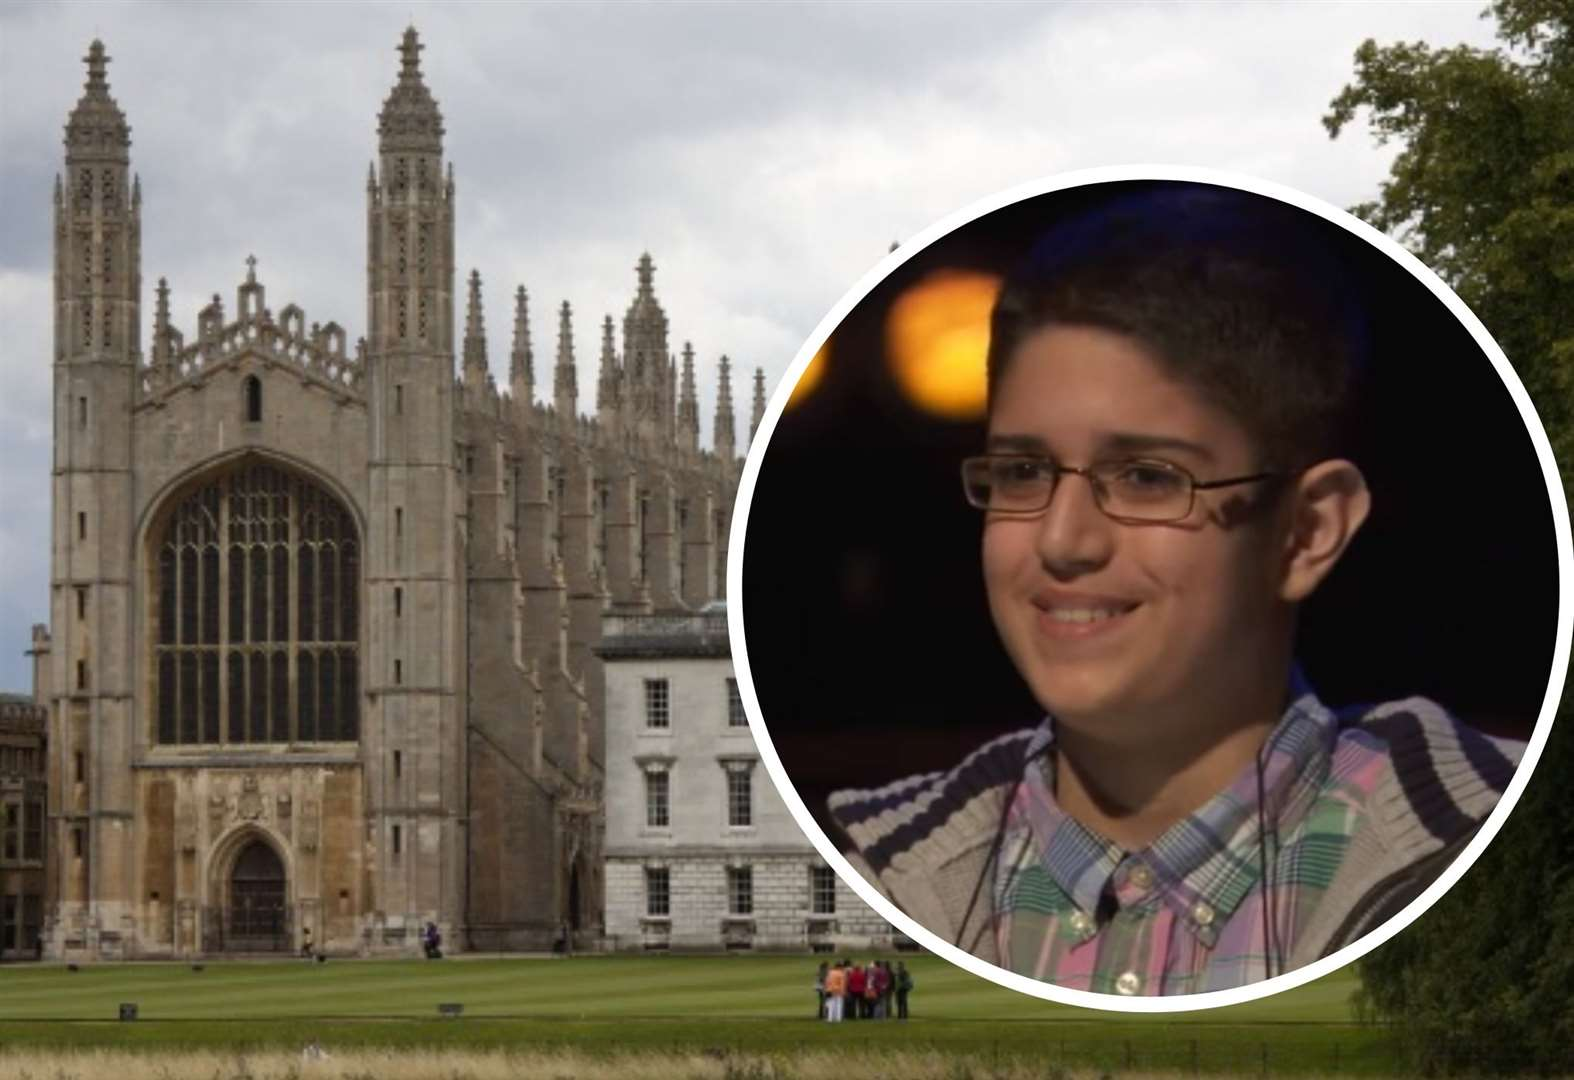 Child genius gets Cambridge interview